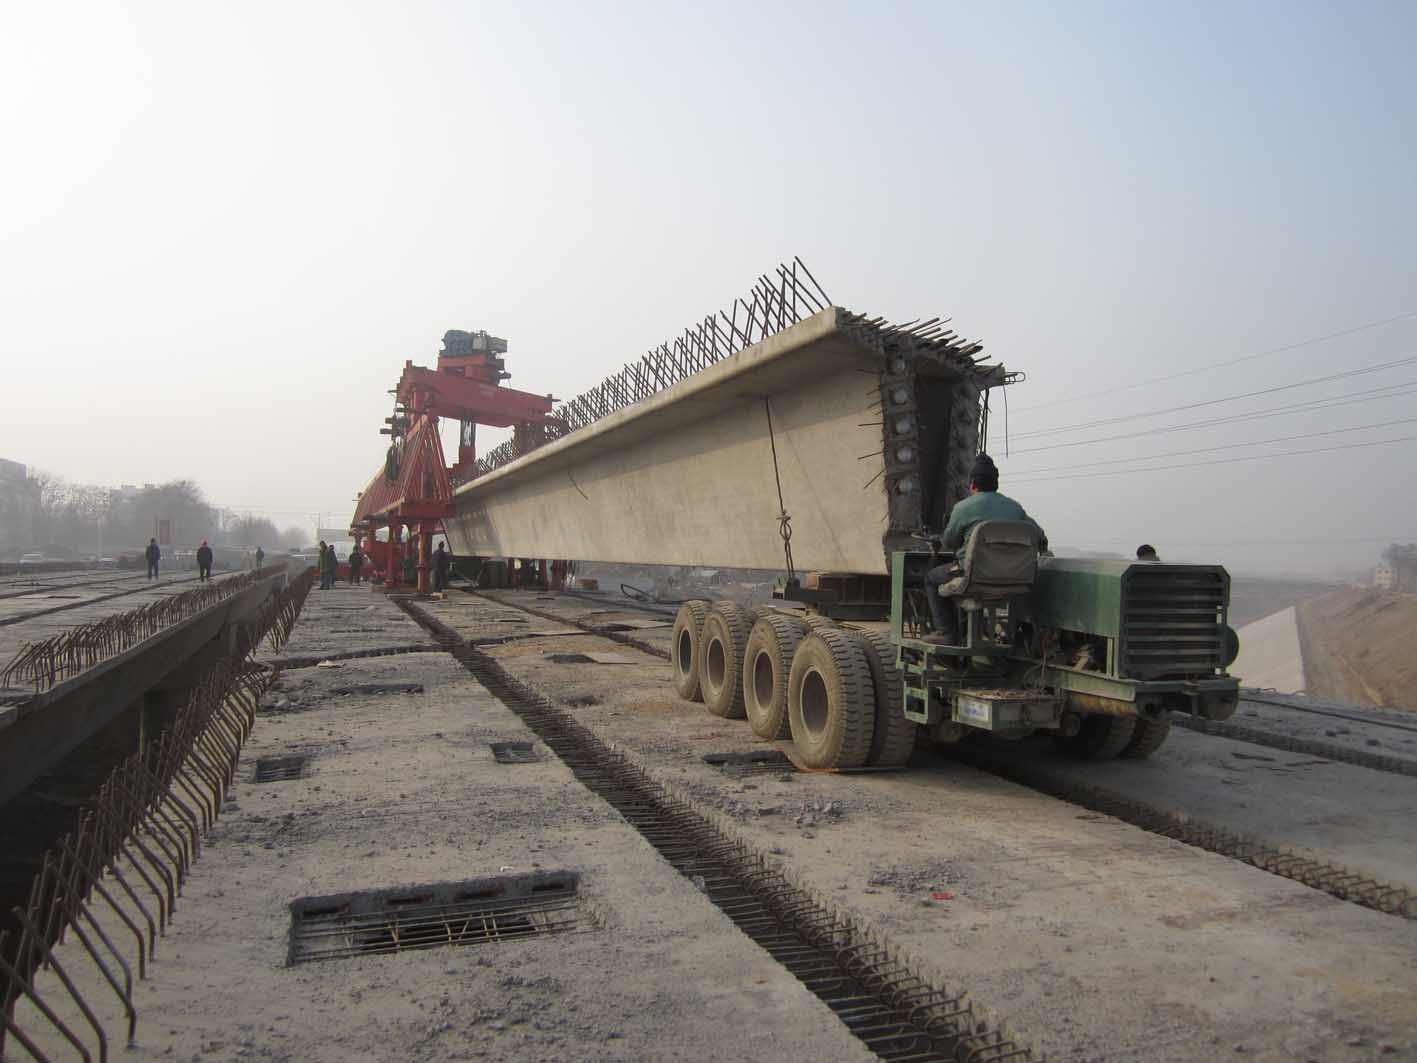 Construciton Sidelights for beam launcher and girder carrier